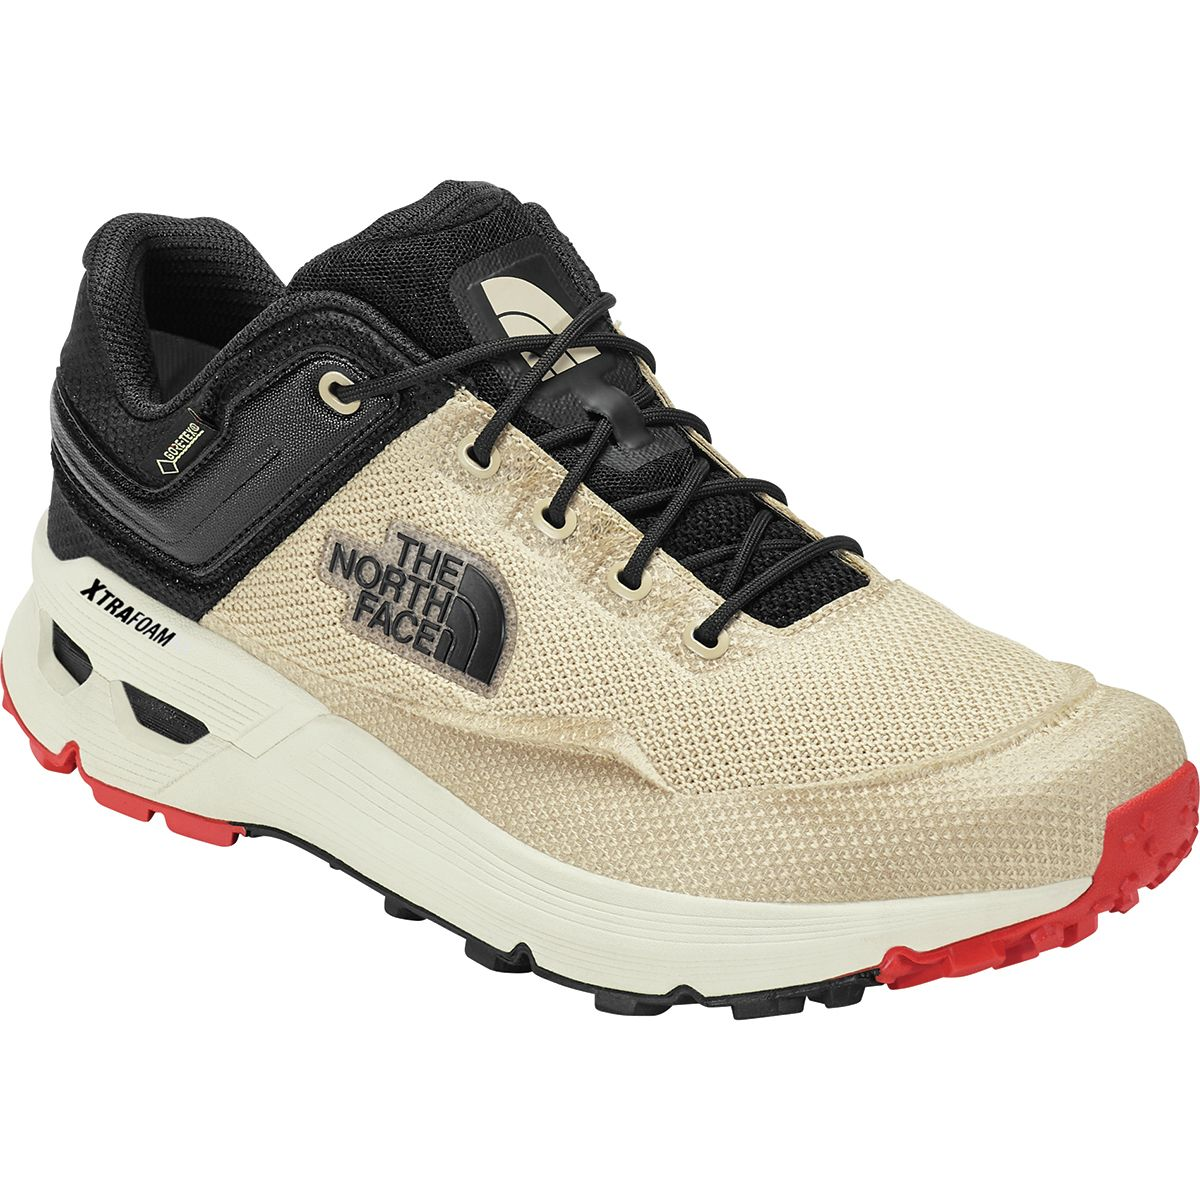 The North Face Safien GTX